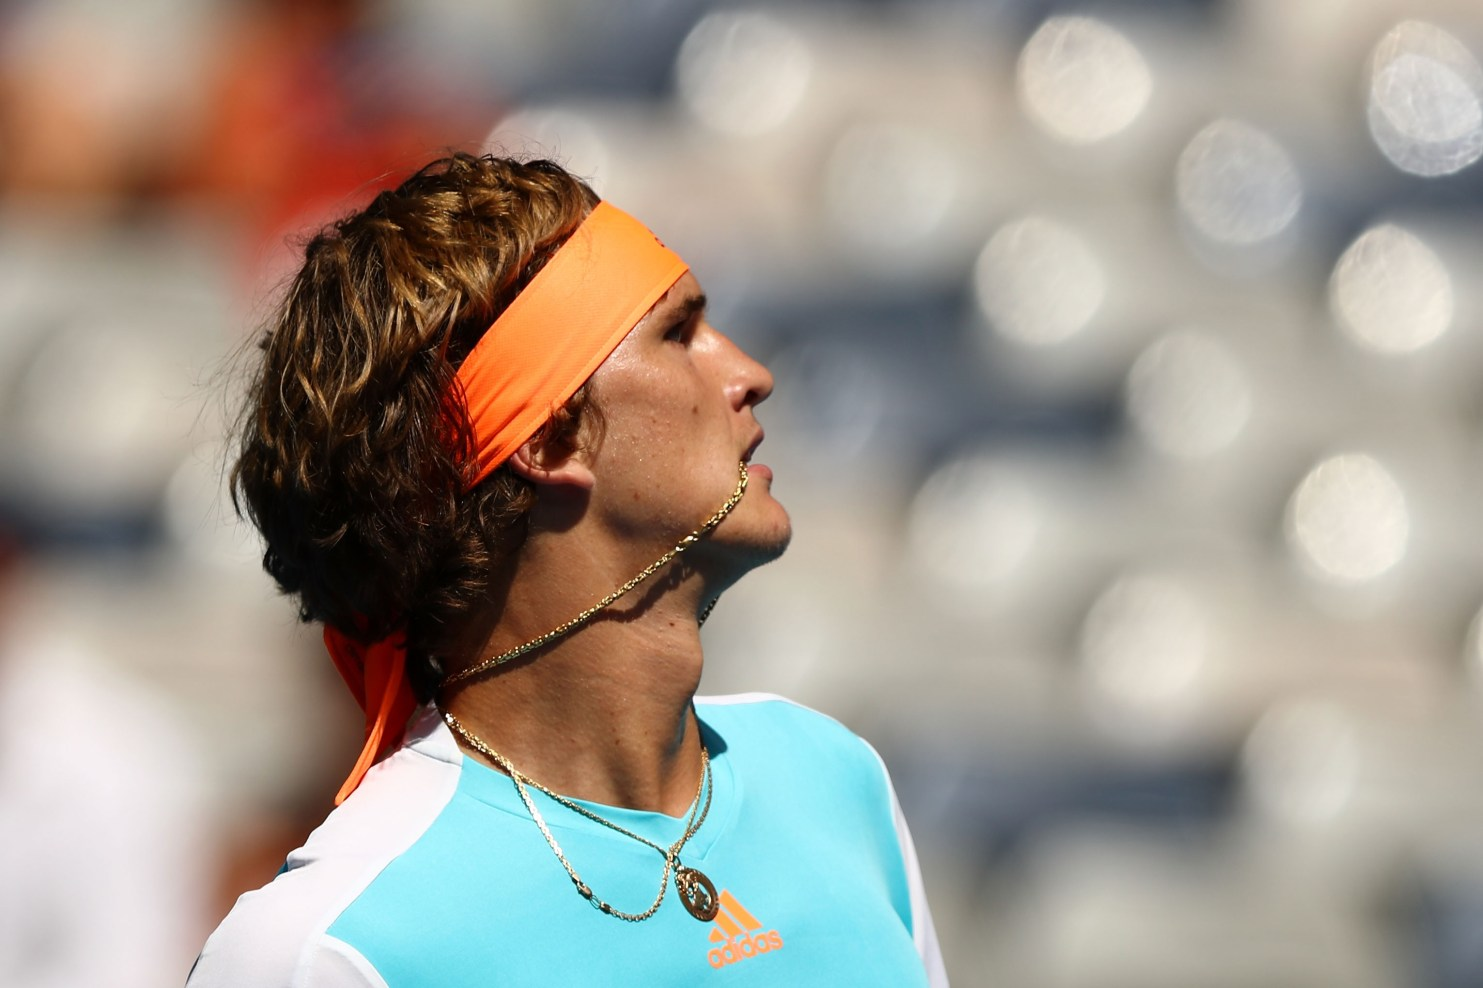 MELBOURNE, AUSTRALIA - JANUARY 17: Alexander Zverev of Germany looks on in his first round match against Robin Haase of the Netherlands on day two of the 2017 Australian Open at Melbourne Park on January 17, 2017 in Melbourne, Australia. (Photo by Ryan Pierse/Getty Images)